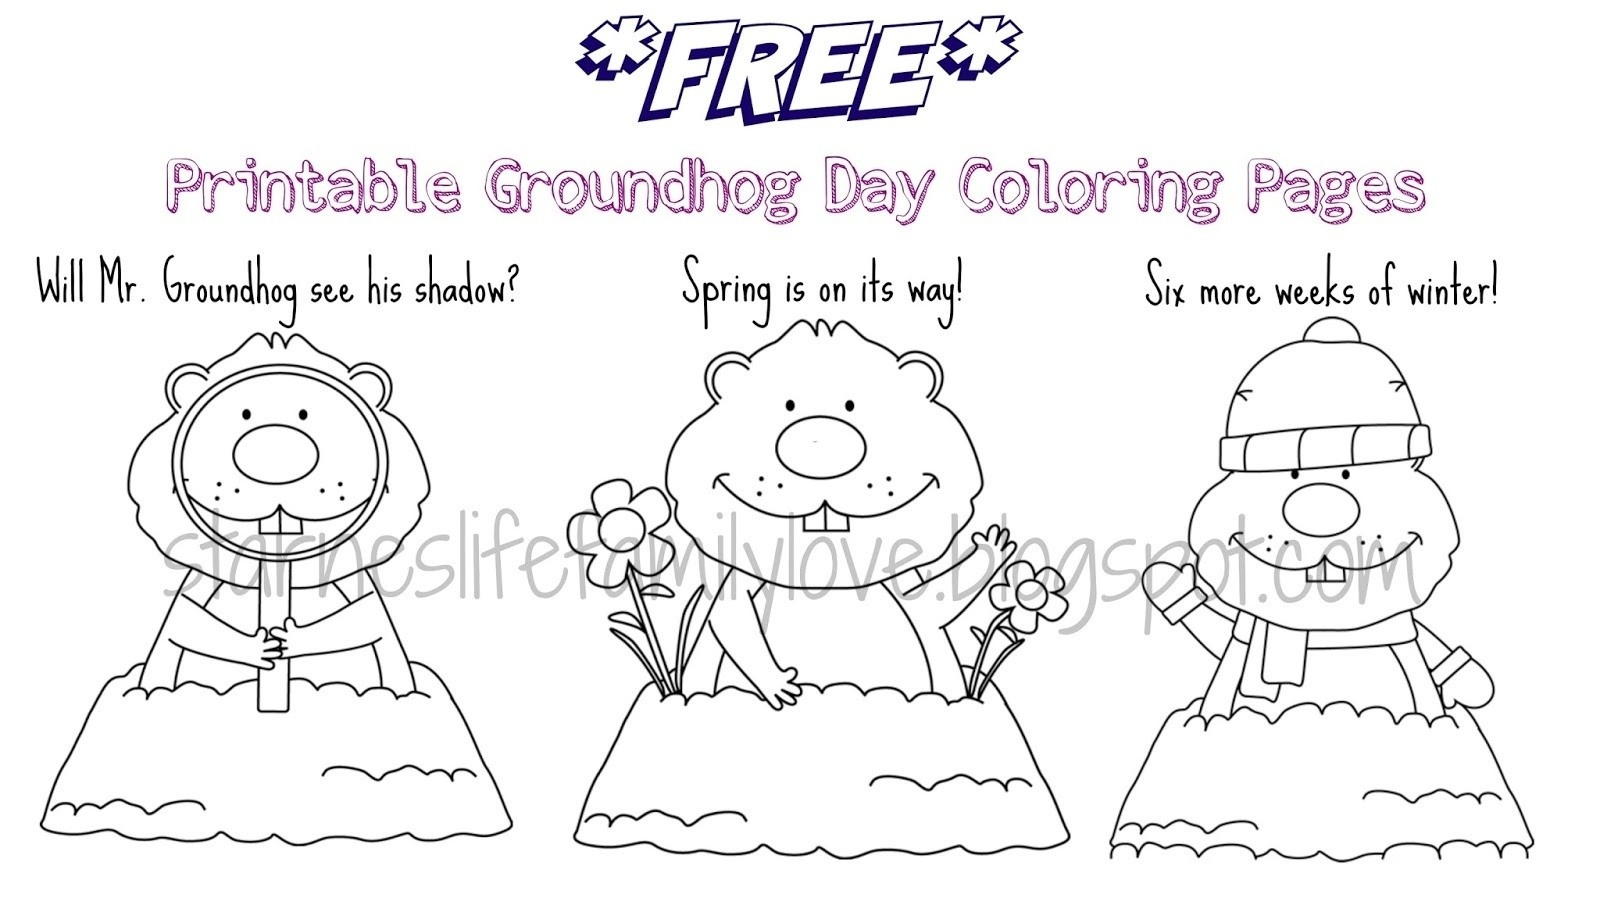 Adult Coloring Pages Groundhog Day To Print 15 I 3 - Indianmemories - Groundhog Day Coloring Pages Free Printable